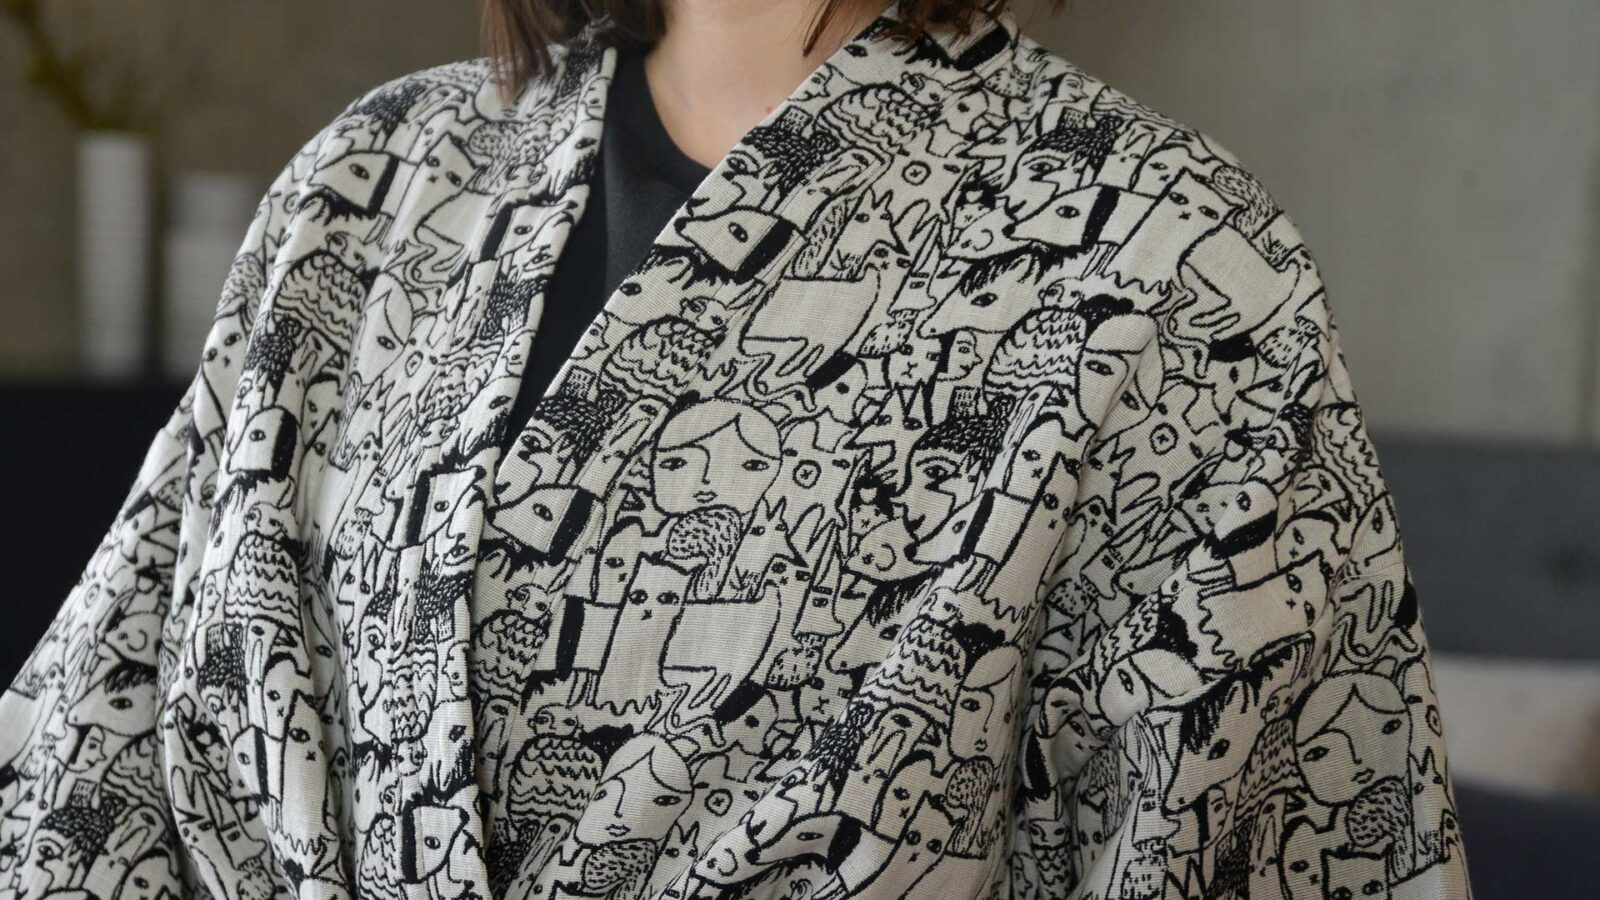 Donna Wilson black and white woven characters design robe, a close up view